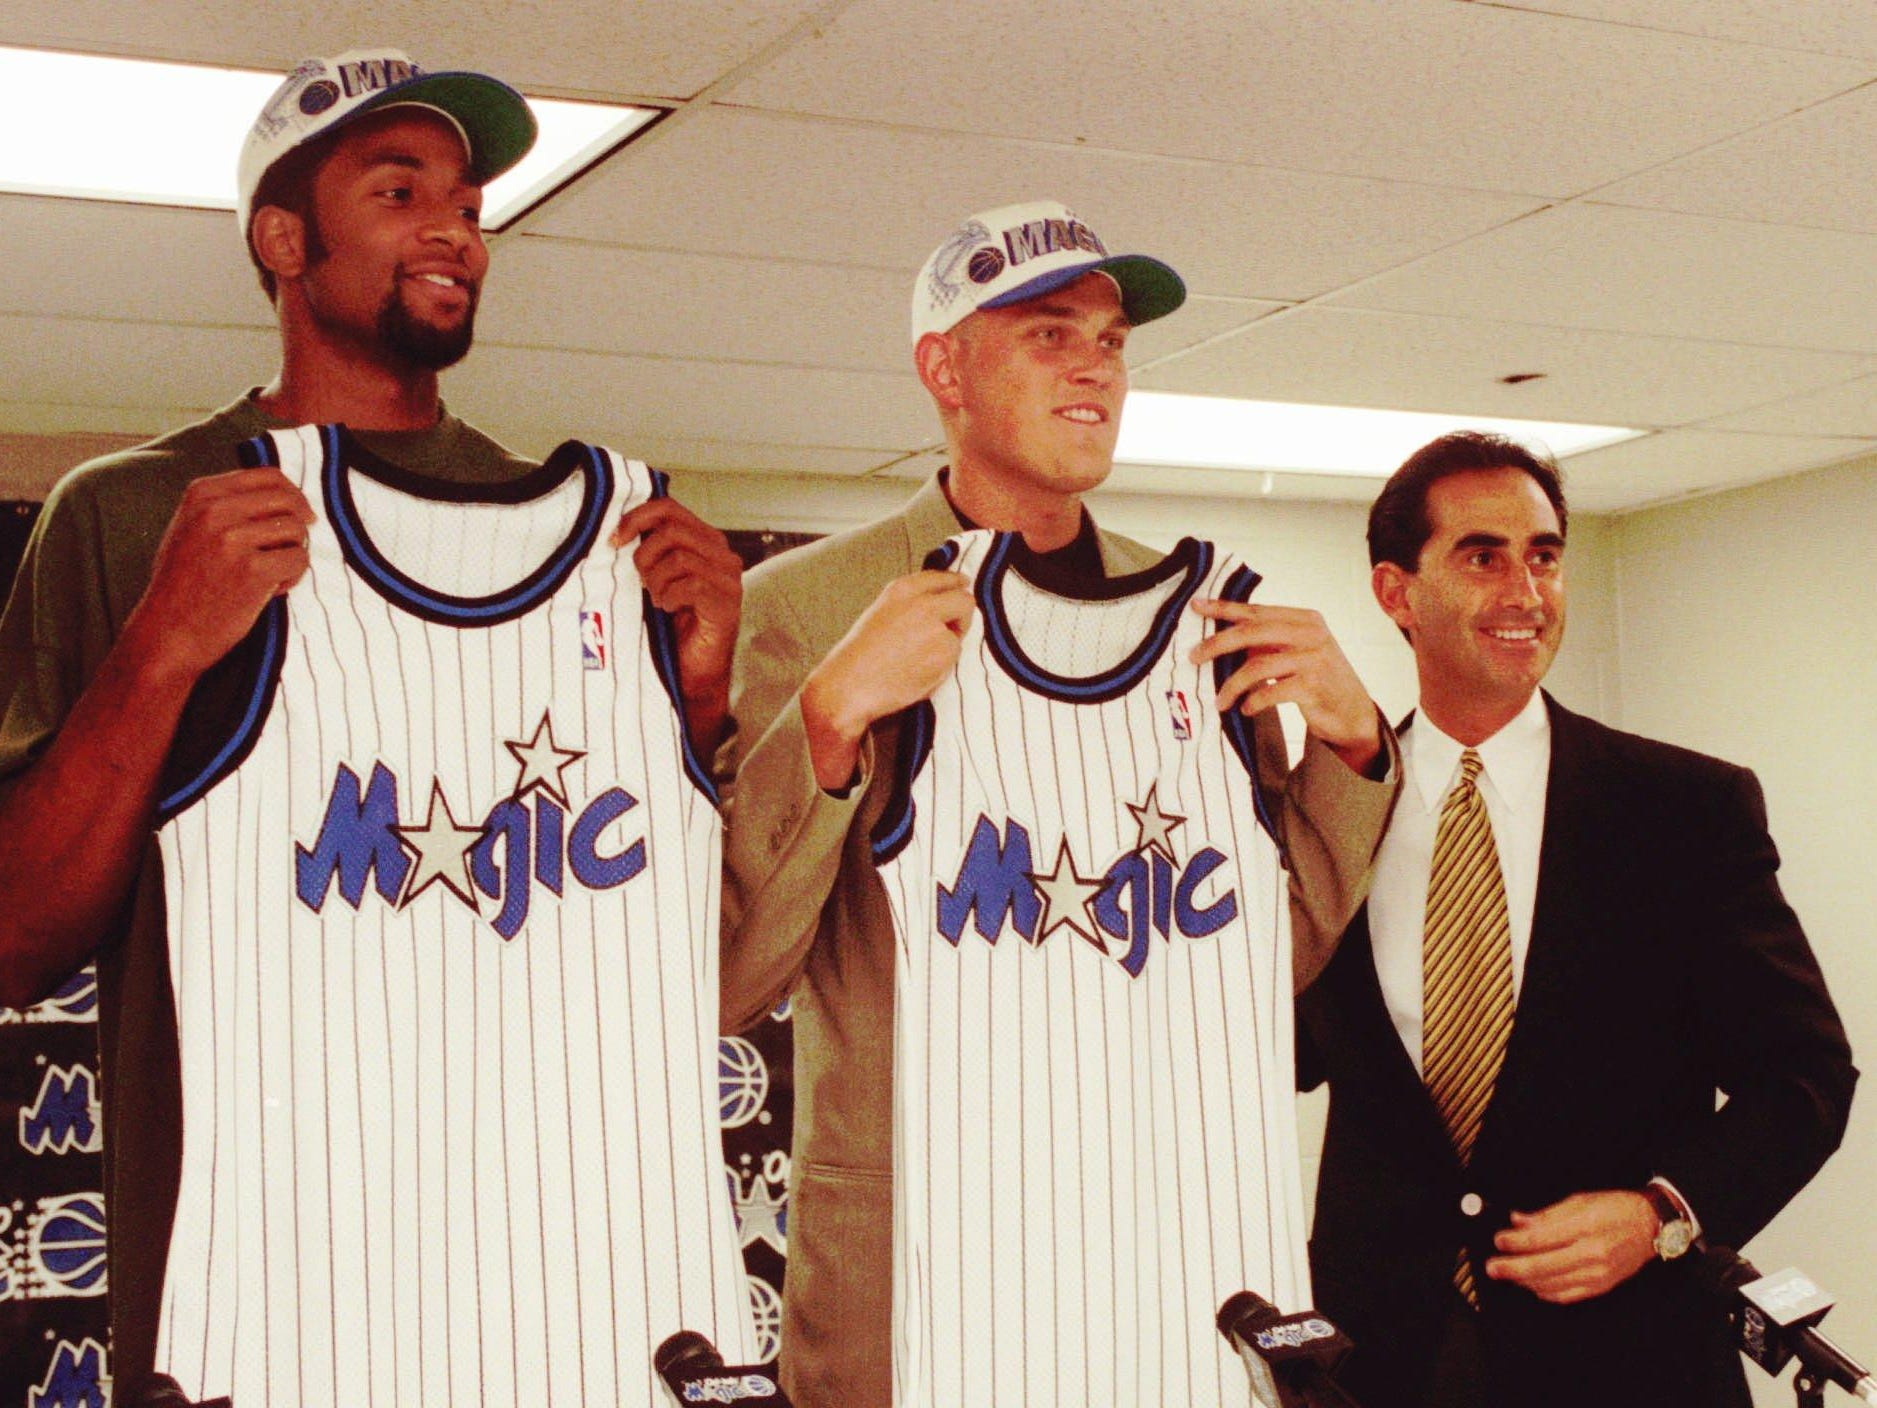 Orlando Magic draft picks Amal McCaskill, left and Brian Evans hold up jerseys after general manager John Gabriel introduced the pair at a press conference in Orlando Thursday afternoon, June 27, 1996.